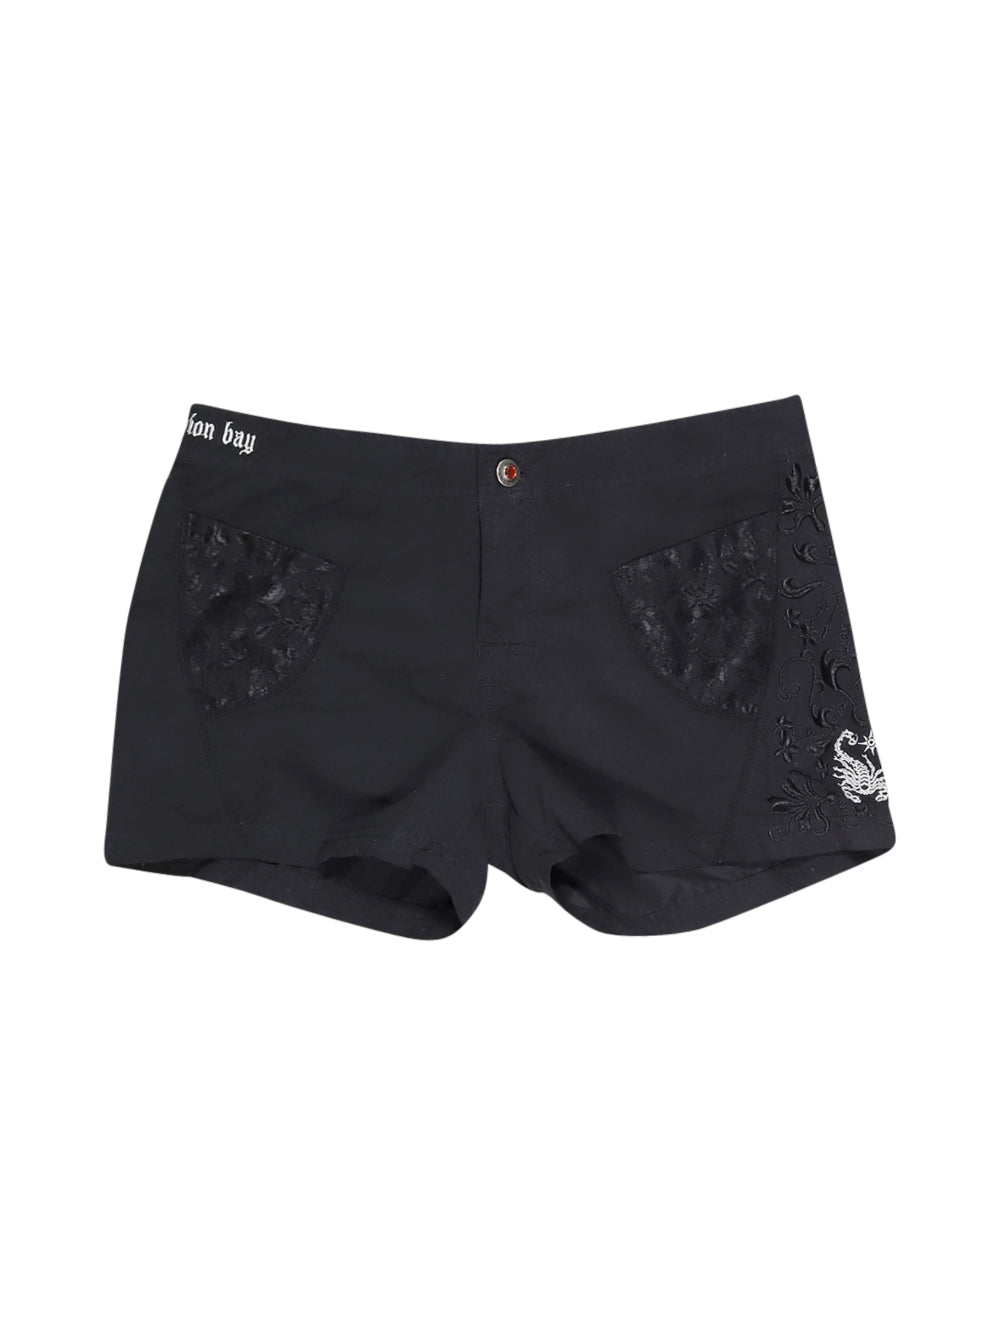 Front photo of Preloved Scorpion Bay Black Woman's shorts - size 8/S